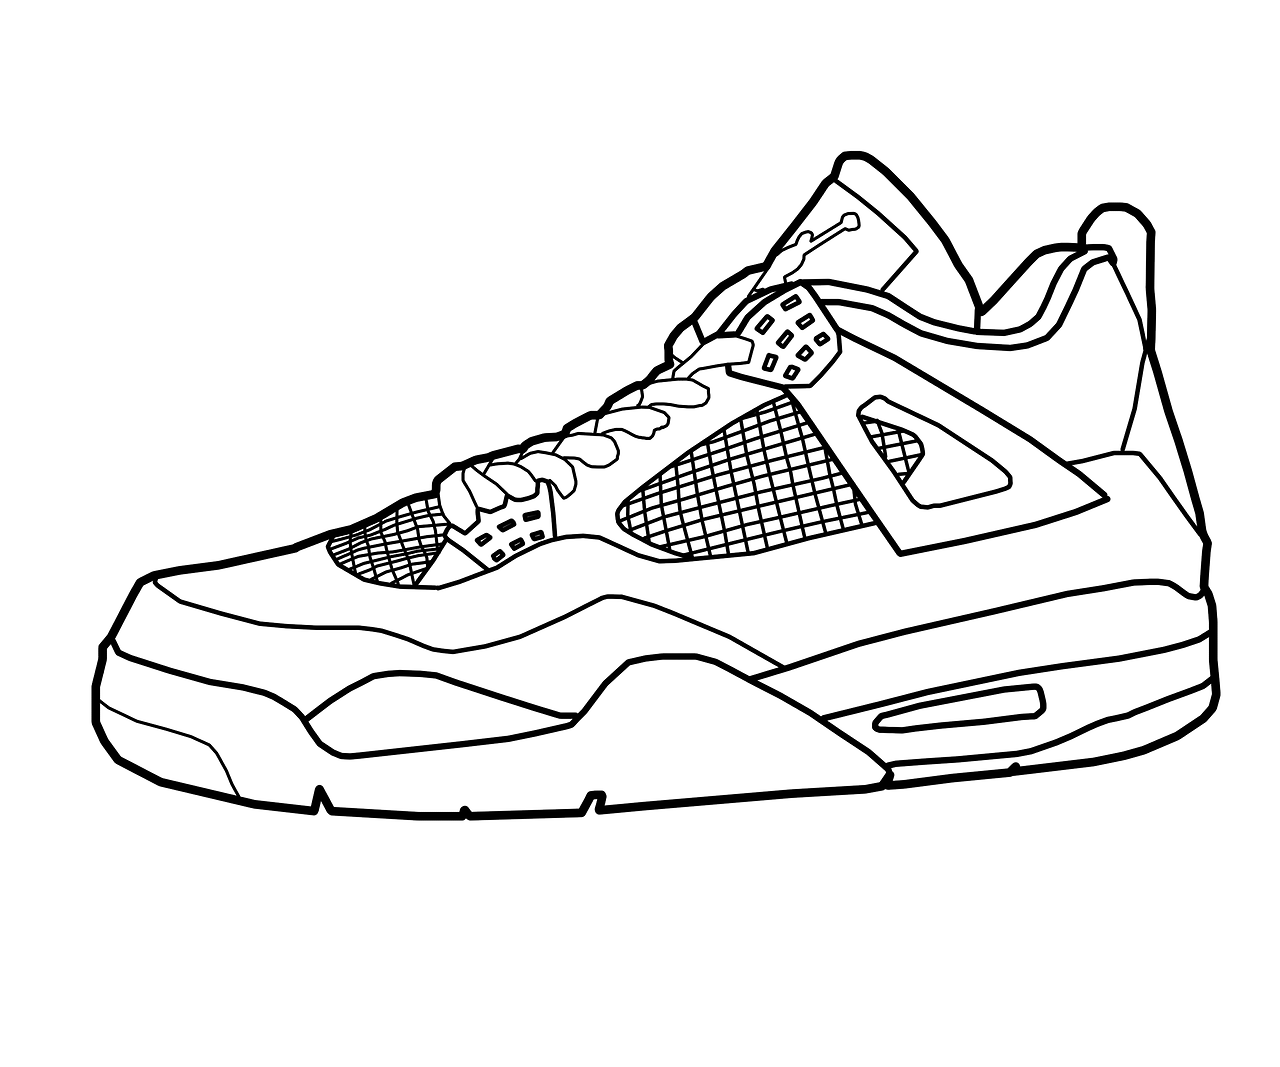 printable tennis shoe coloring pages - photo#14